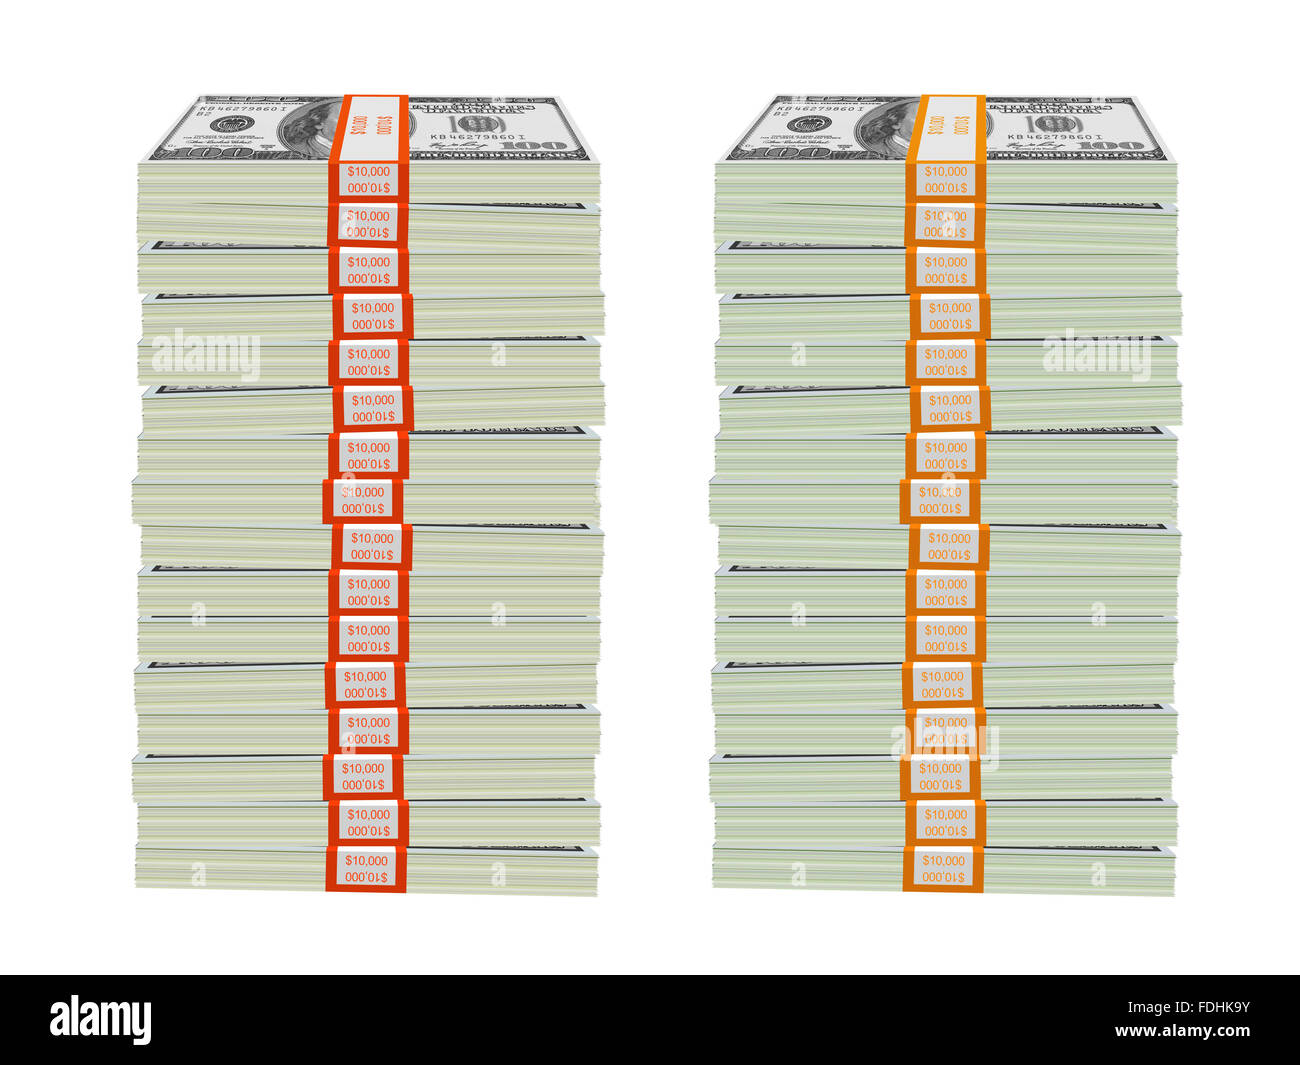 Stacks of Hundred Dollar Bills in Bundles (Isolated) - Stock Image